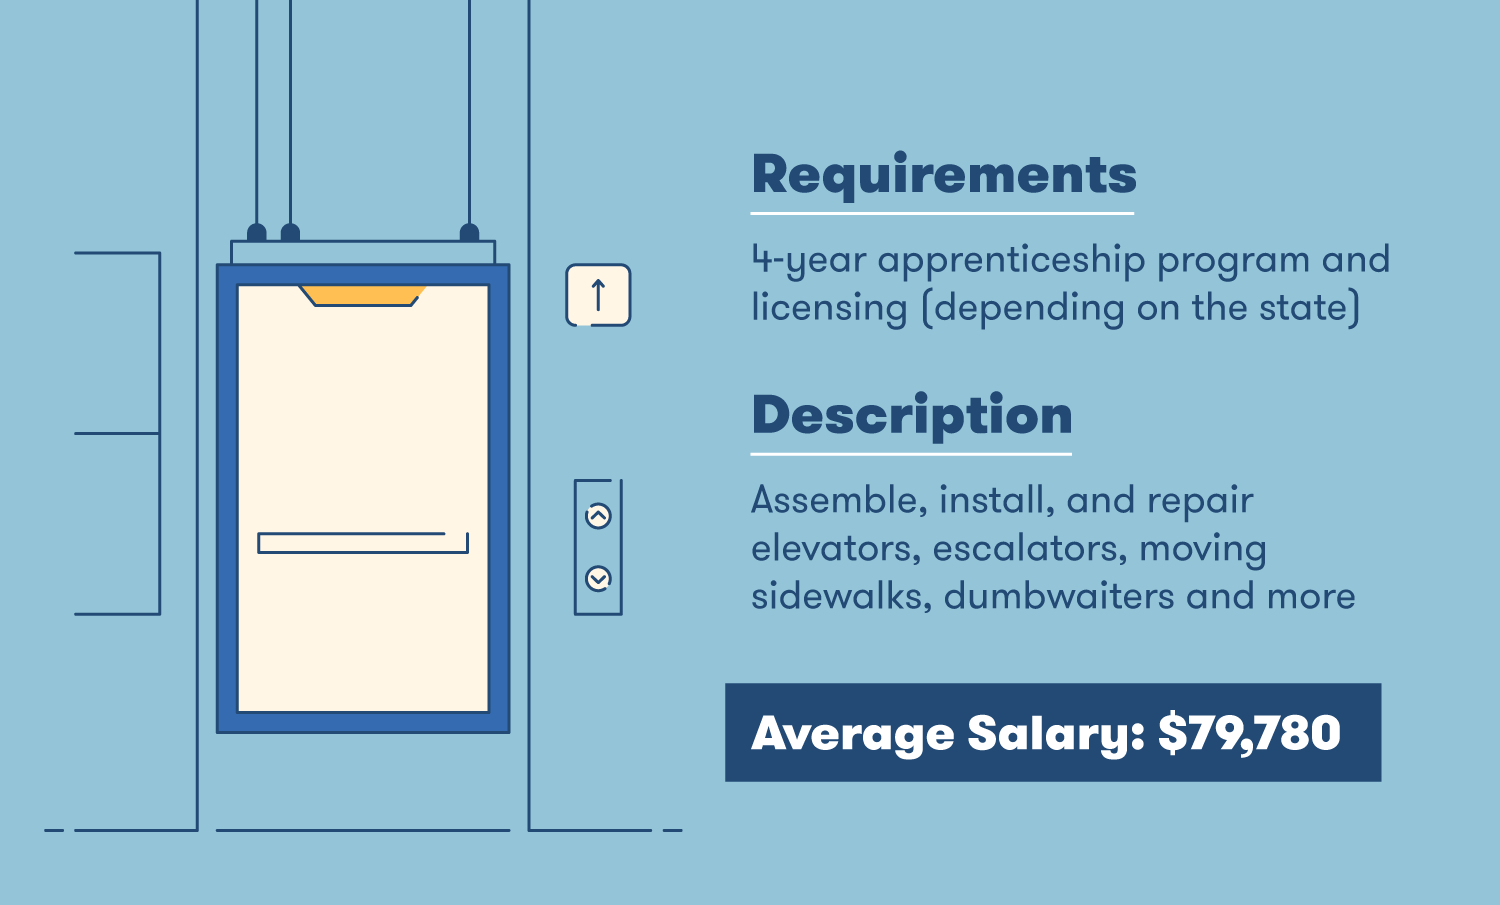 elevator installer requirements description and salary